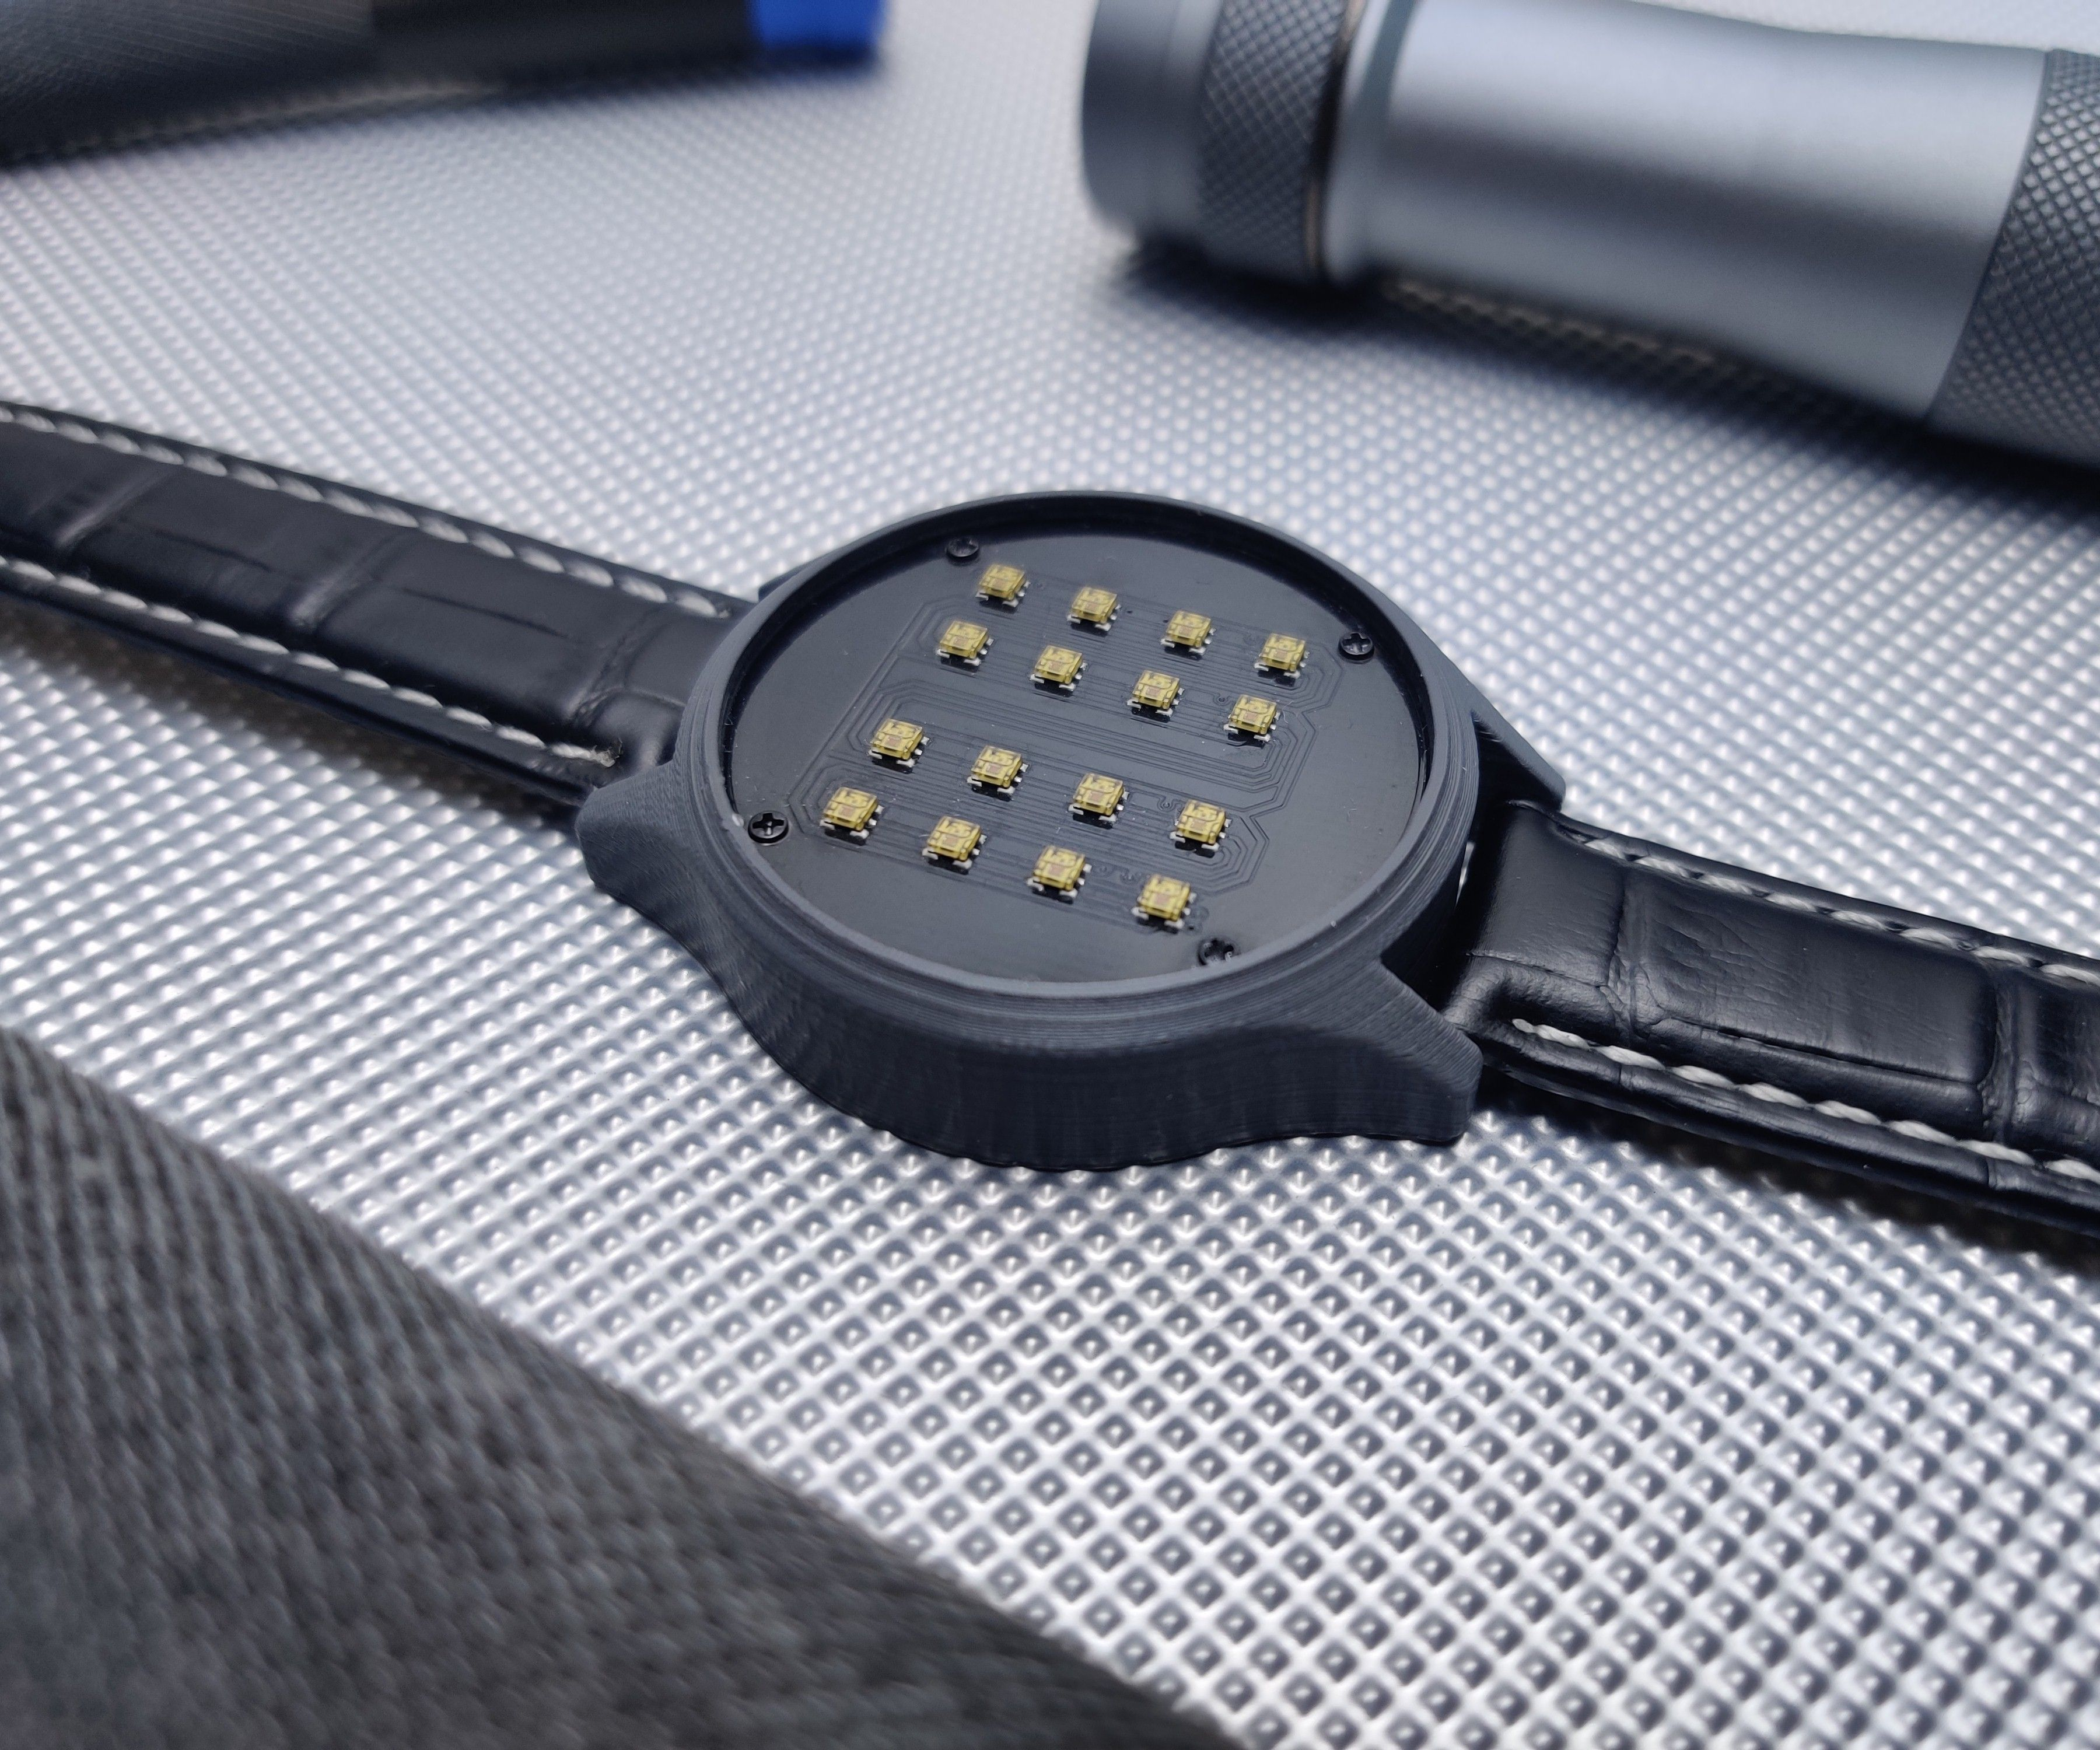 The Ultimate Binary Watch